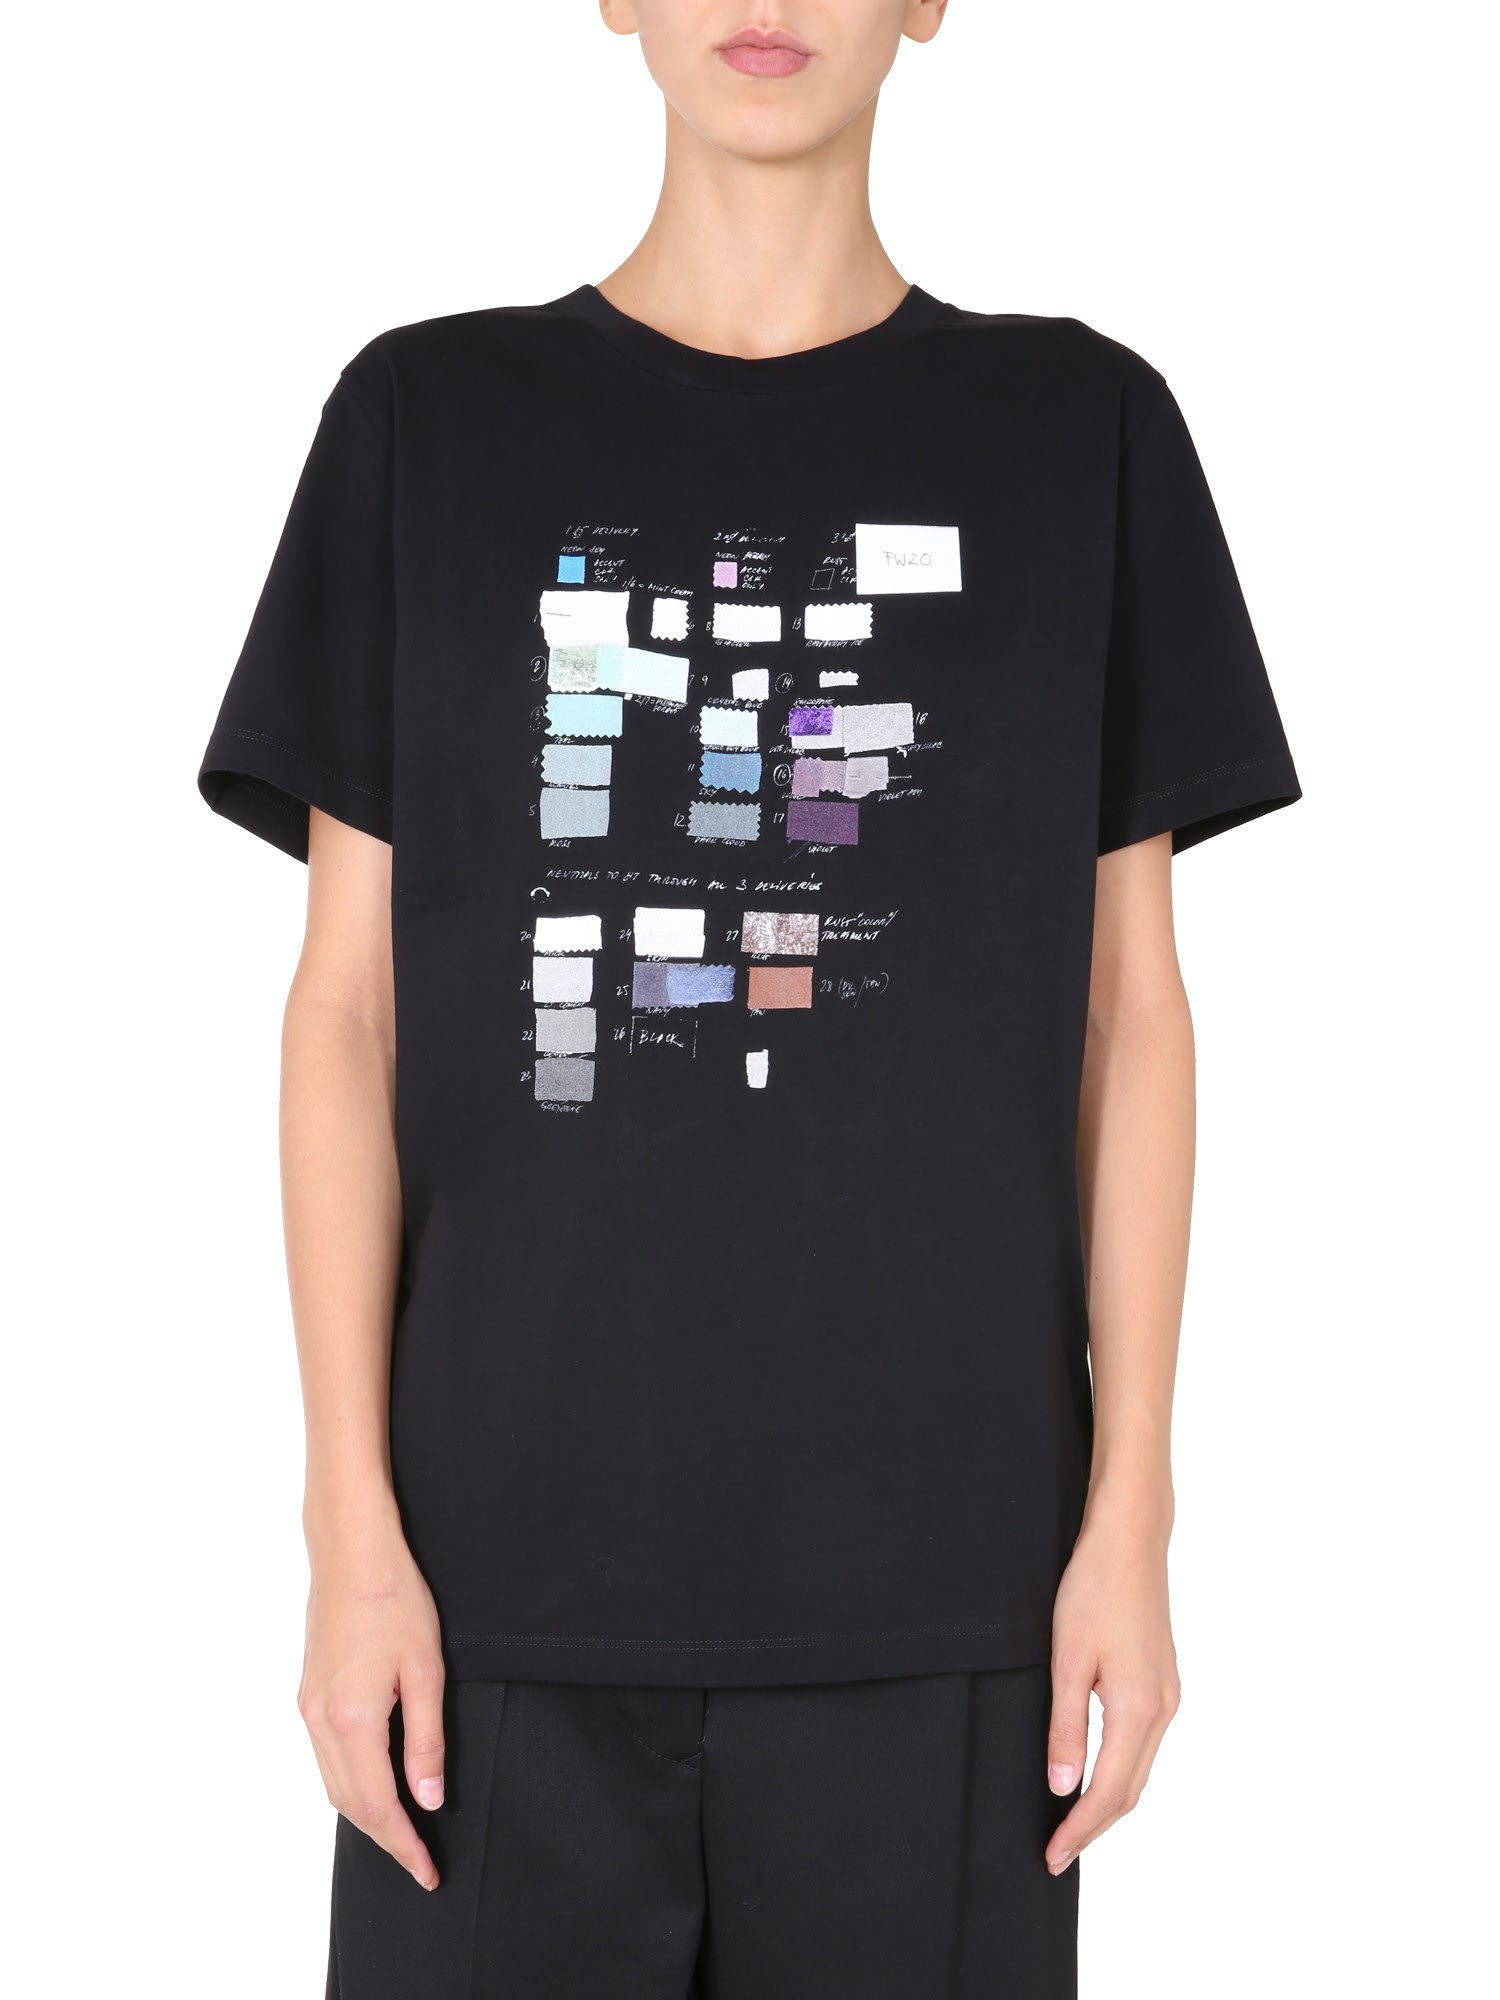 MM6 Maison Margiela Crew Neck T-shirt